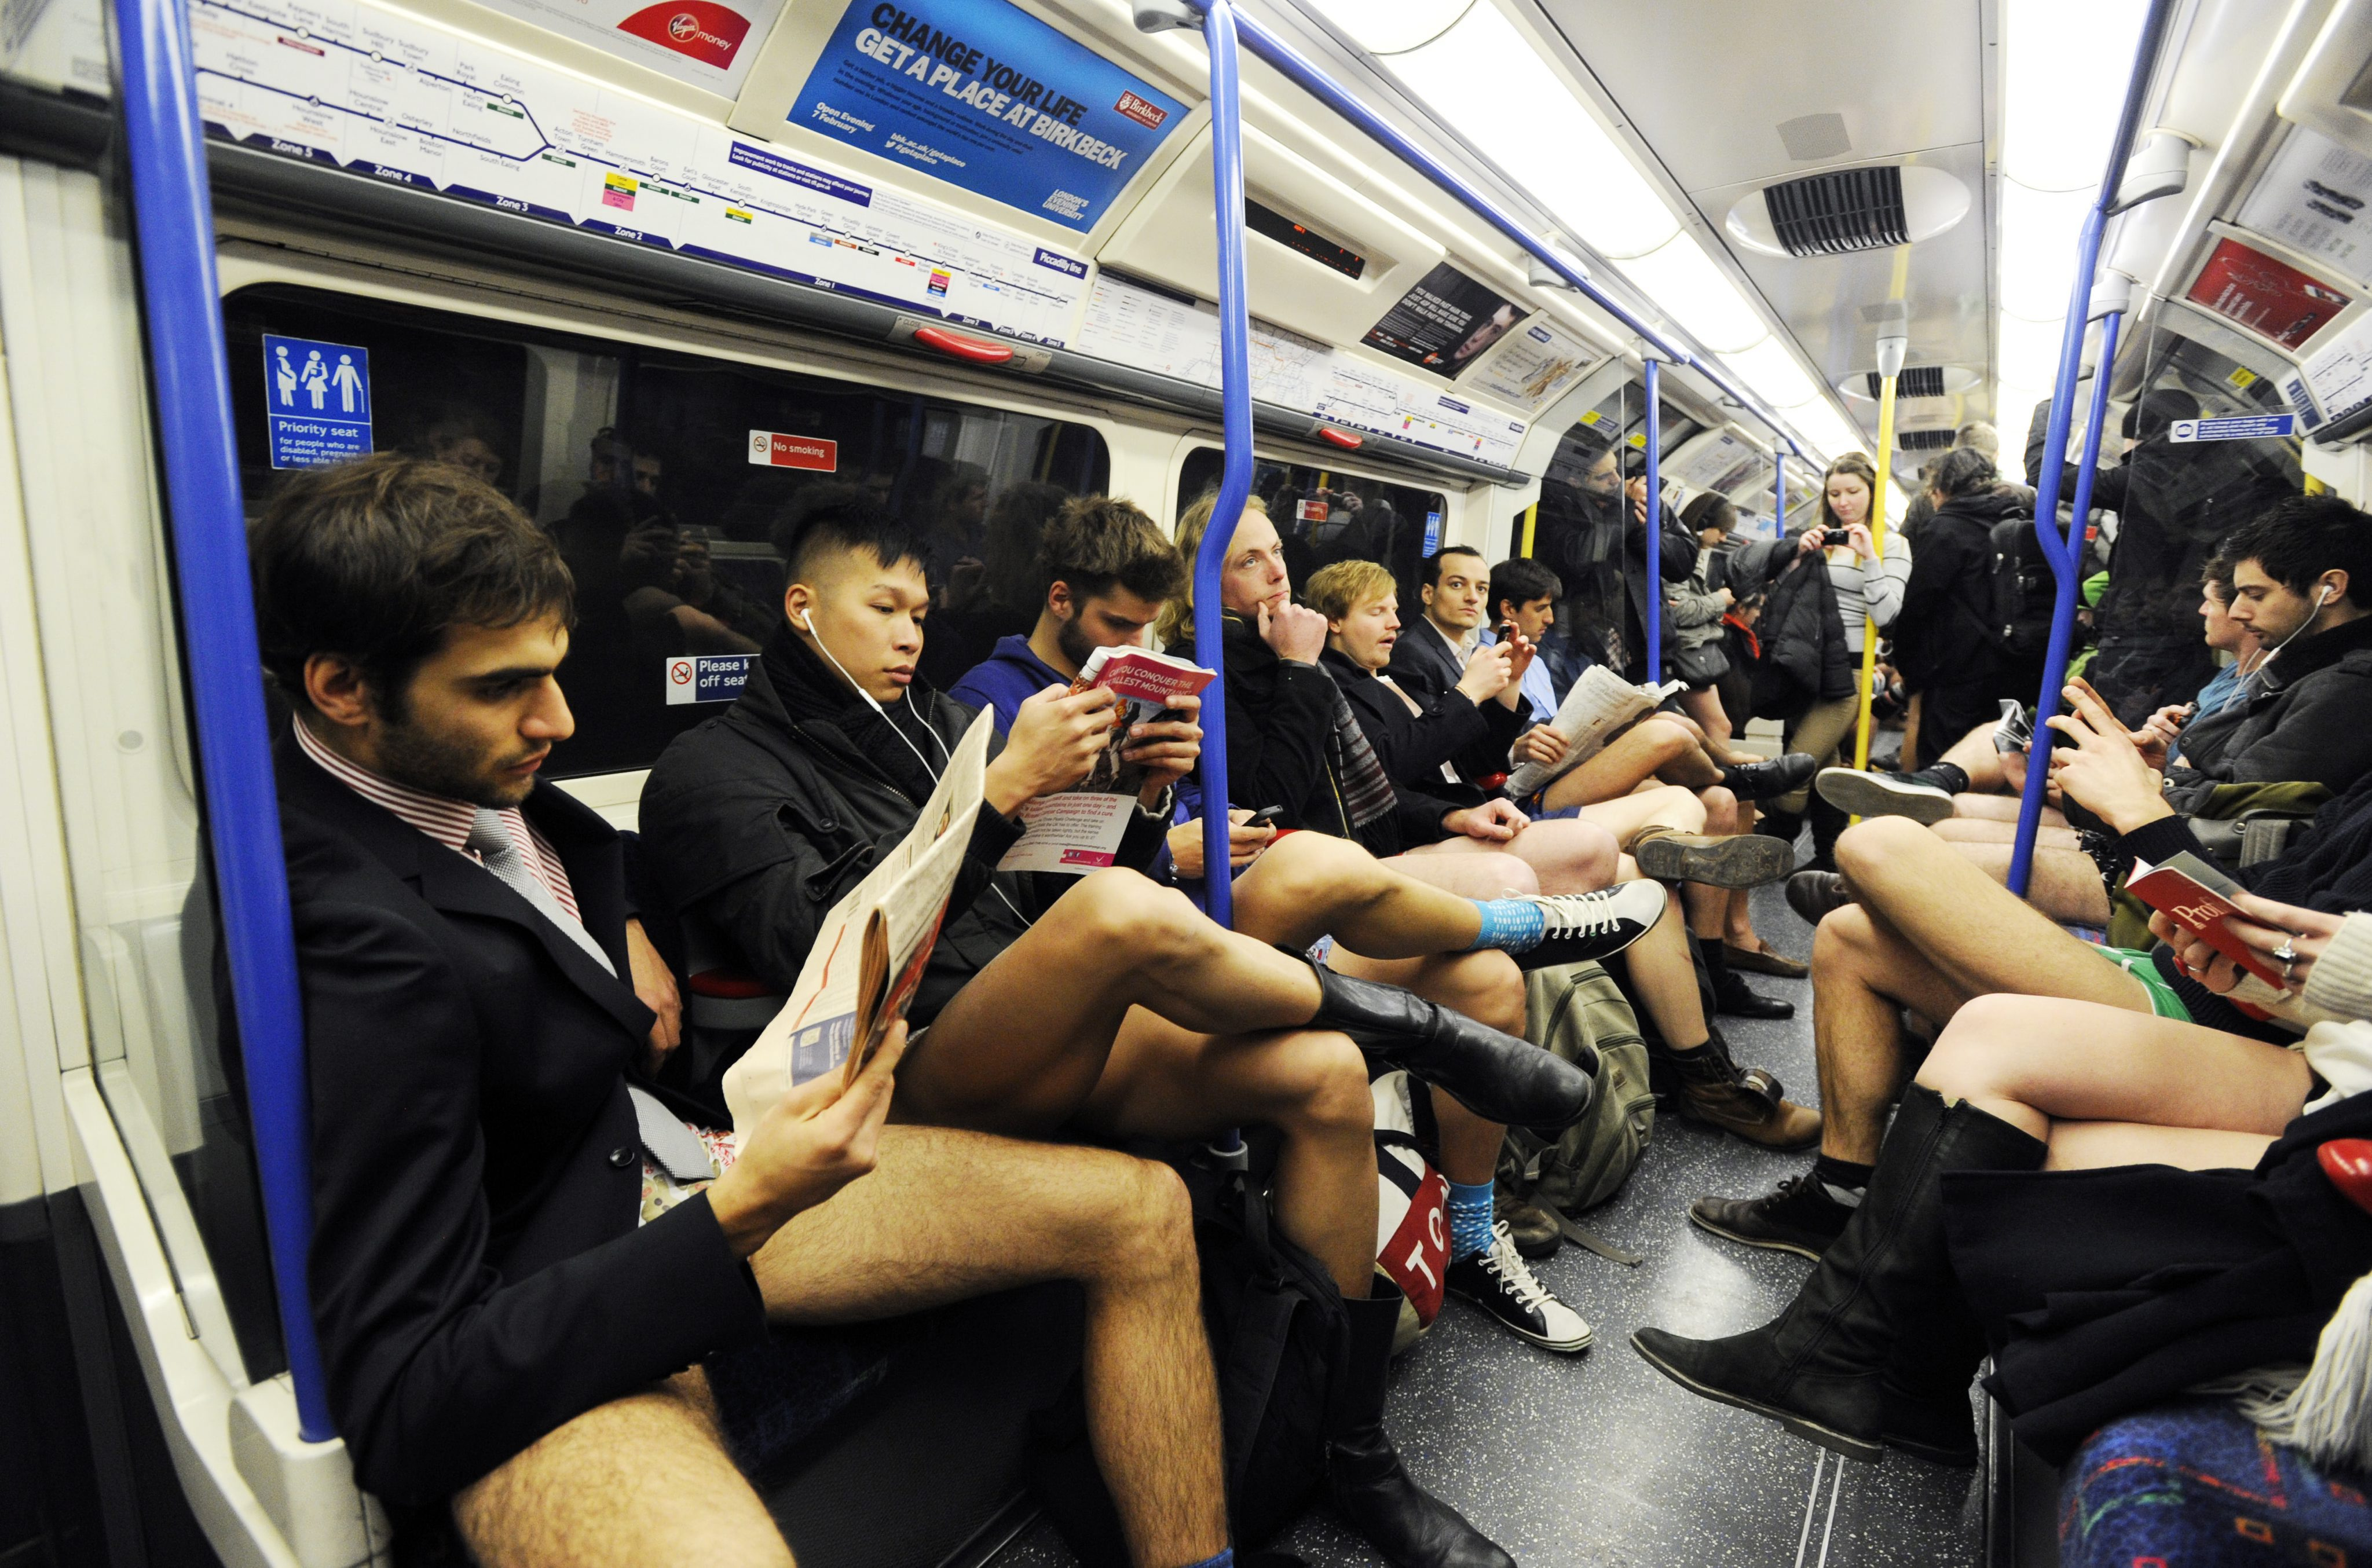 epa03533904 People take part in a No Trousers Day 2013 flash mob on the London Underground, in London, Britain, 13 January 2013. The event is organized by Improv Everywhere and takes place in many cities across the world. The goal for the participants is to get on public transport dressed in normal winter clothes, but without pants while keeping a straight face.  EPA/FACUNDO ARRIZABALAGA